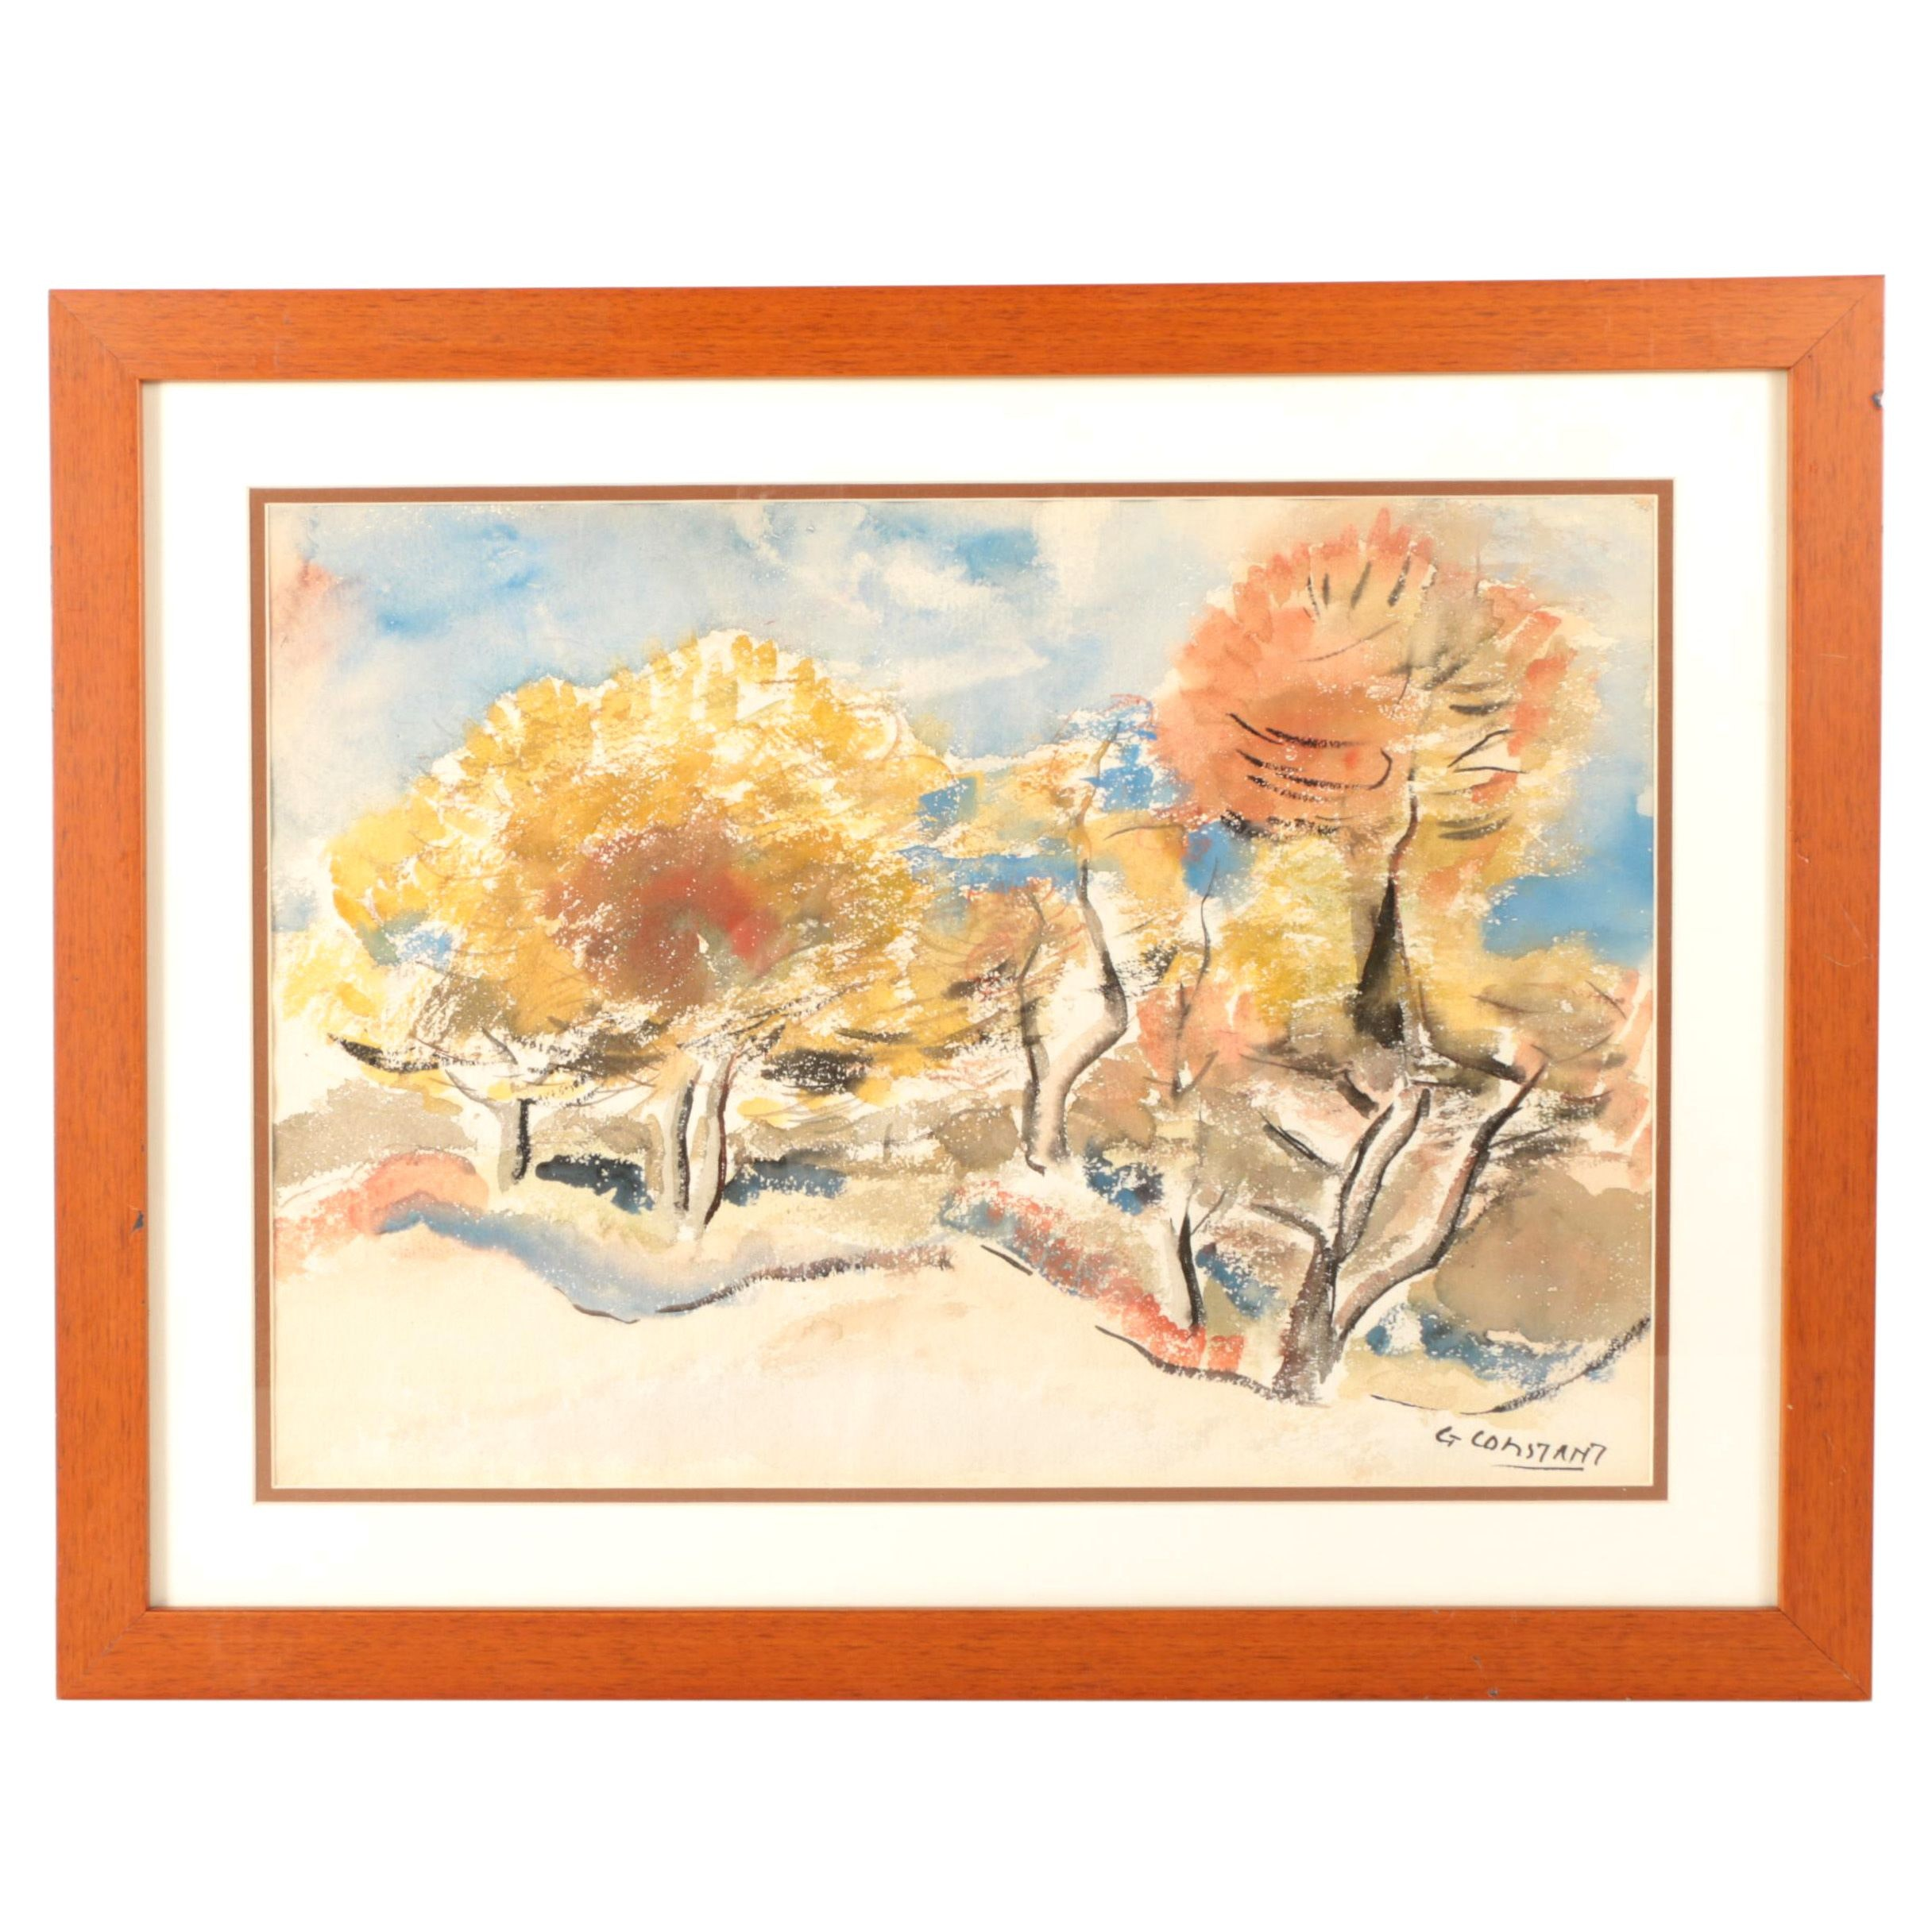 "George Constant Watercolor Painting on Paper ""Abstract Autumn Landscape"""